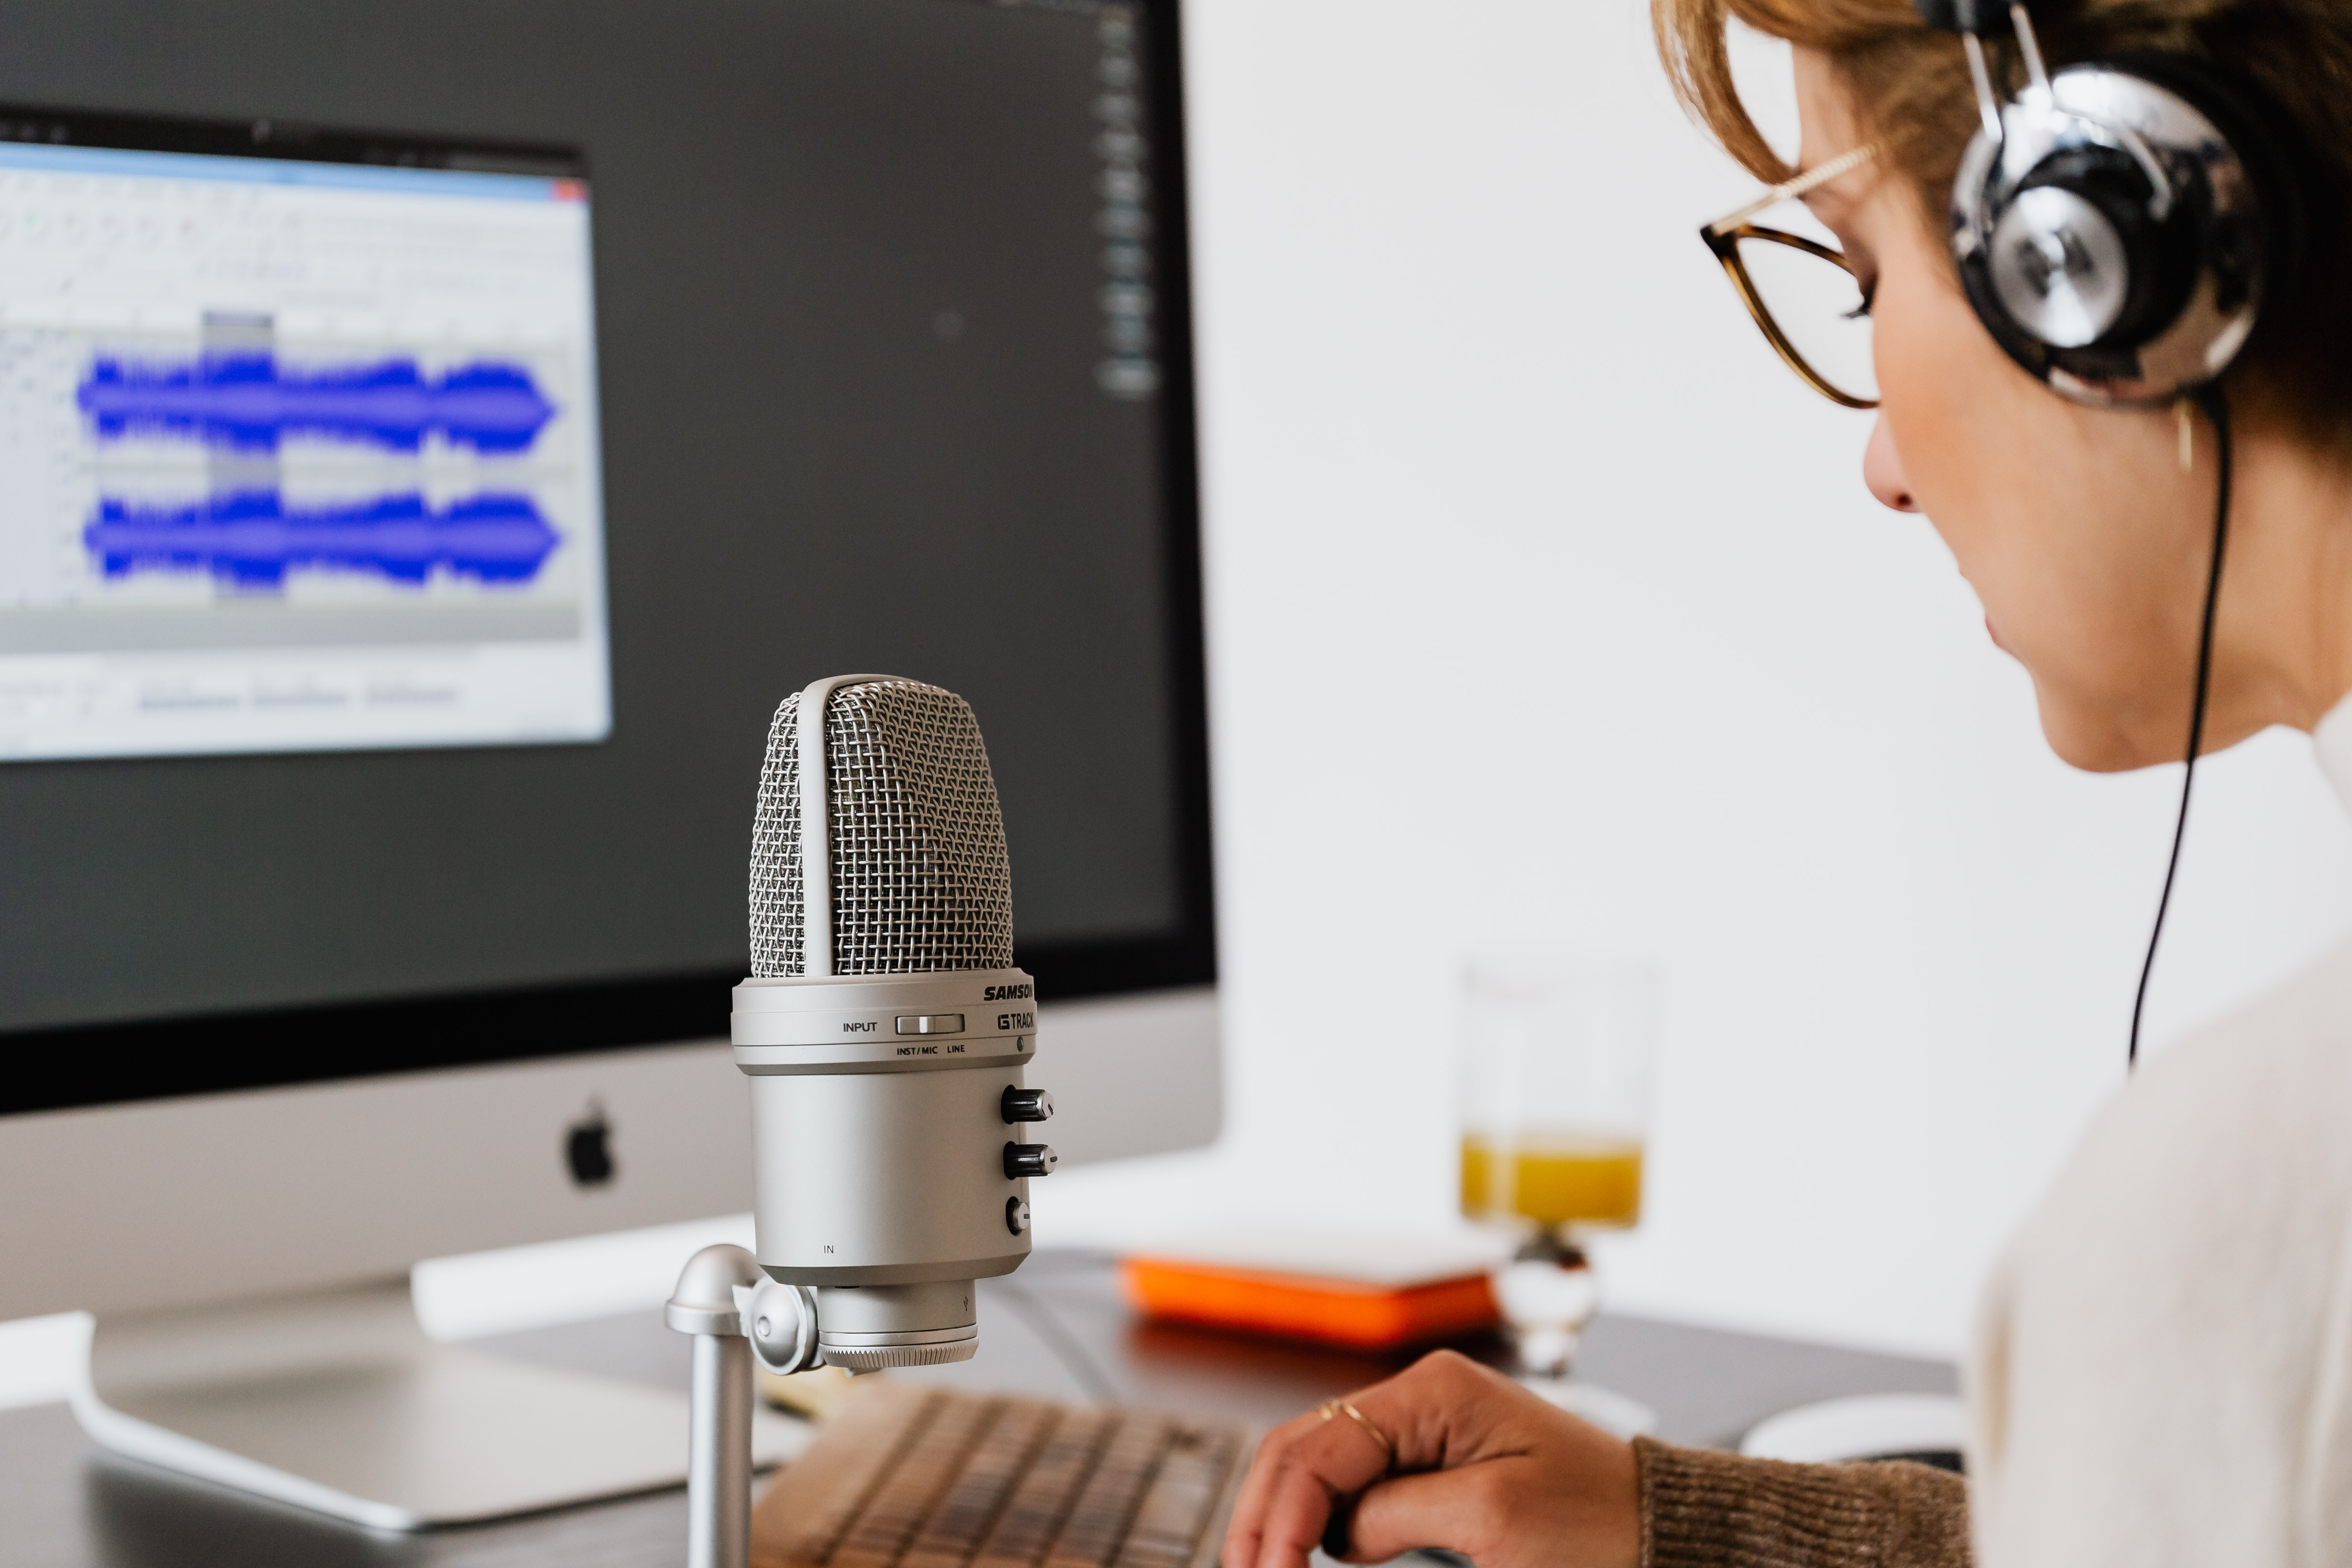 I will record a Voiceover of 200 words for your project